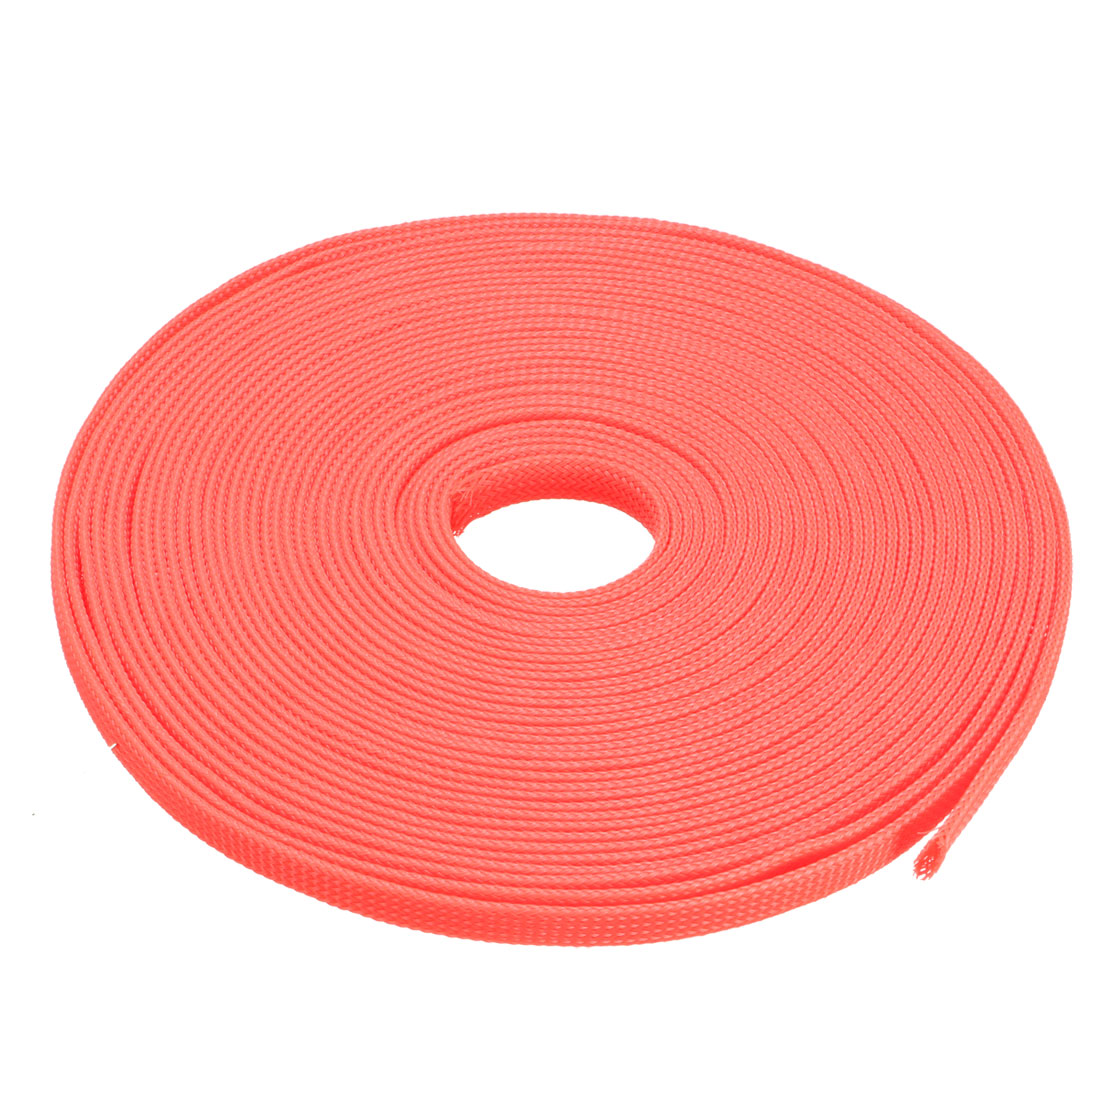 8mm Dia PET Expandable Wire Tight Braided Cables Sleeving Wrap Harness 10M